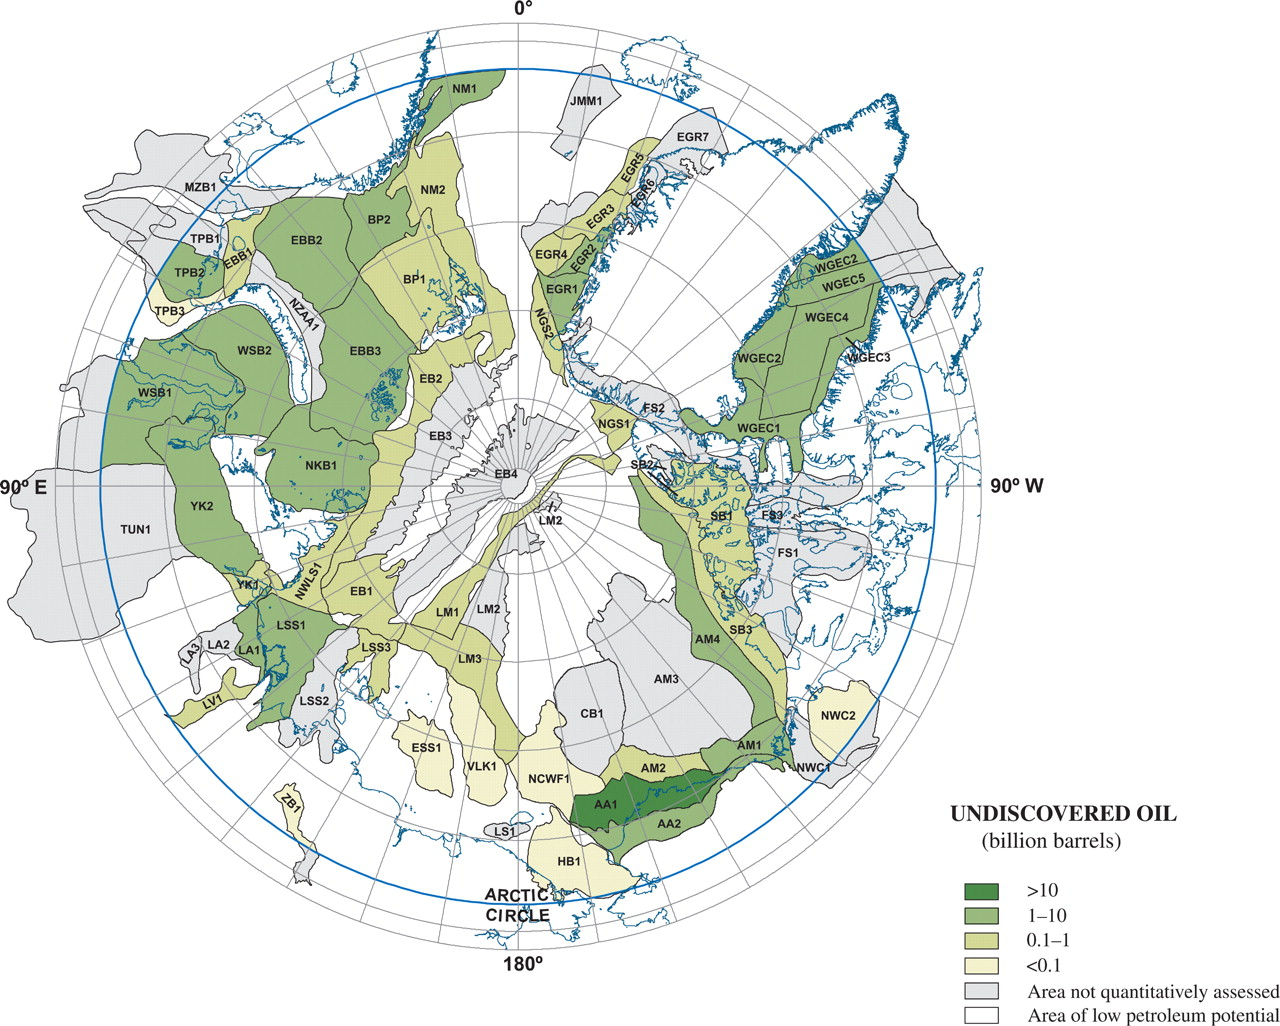 map_Arctic_borders_hydrocarbon_oil_undiscovered_resources_2009